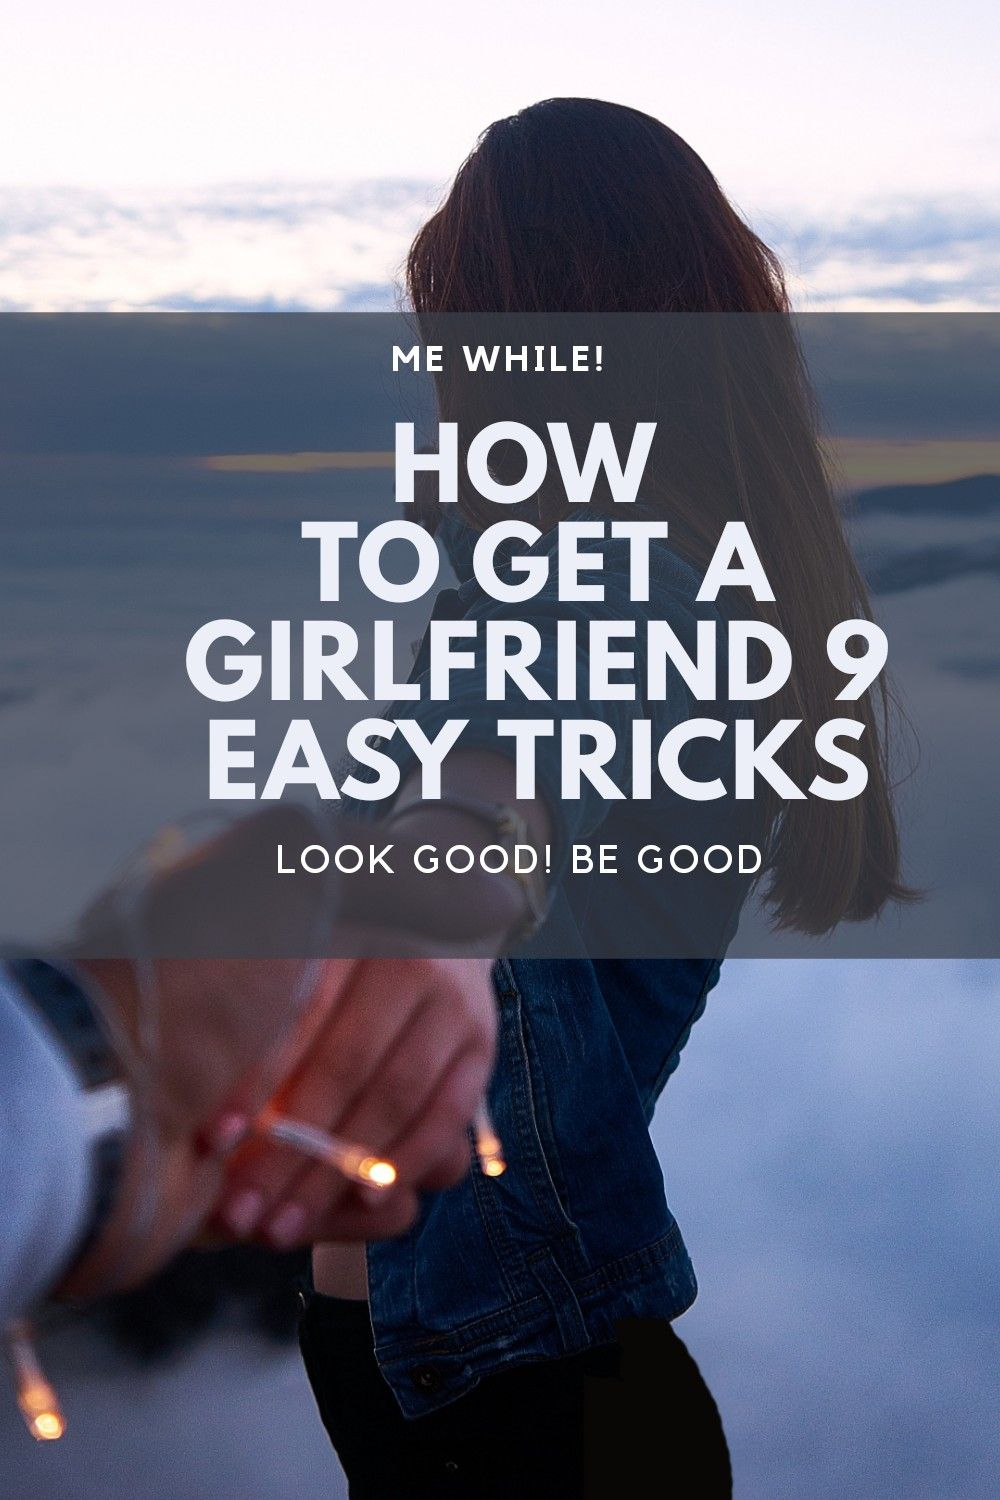 How To Impress Girlfriend After Breakup